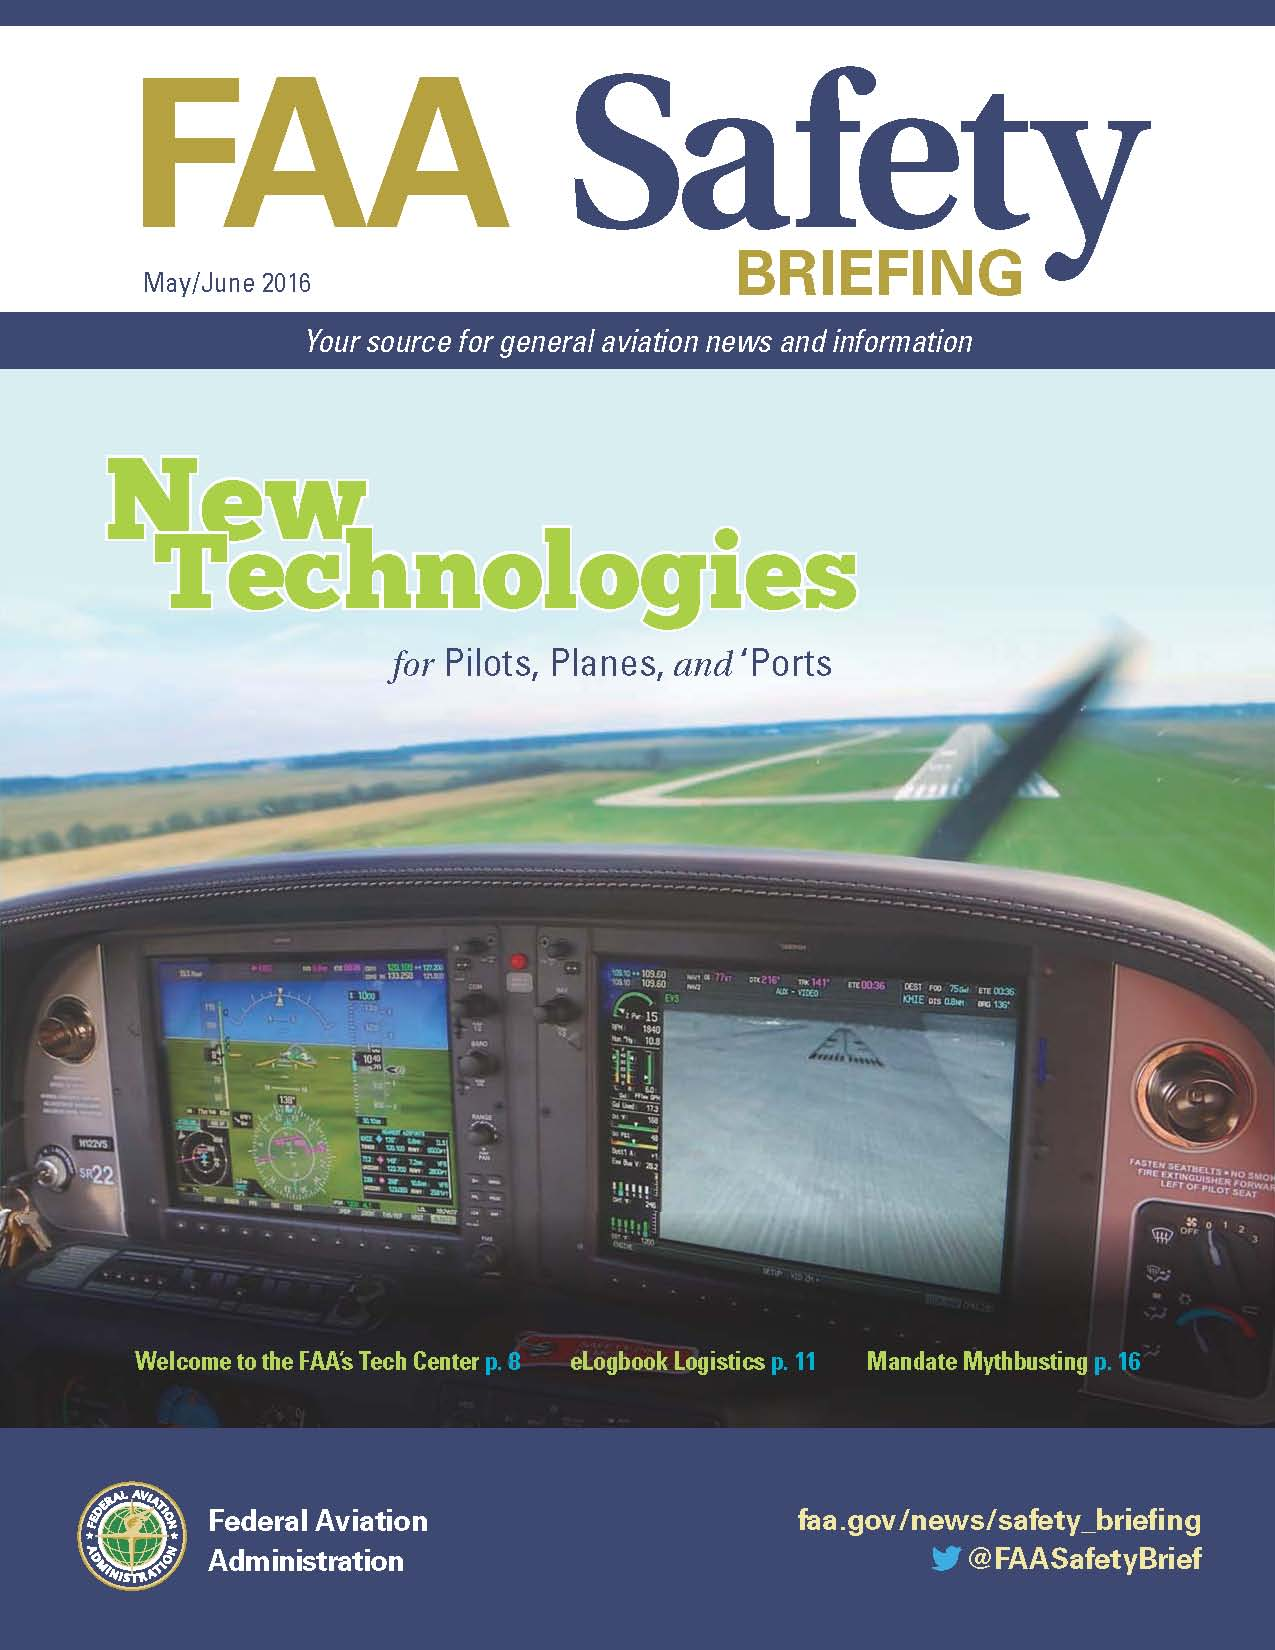 FAA Safety Briefing May June 2016